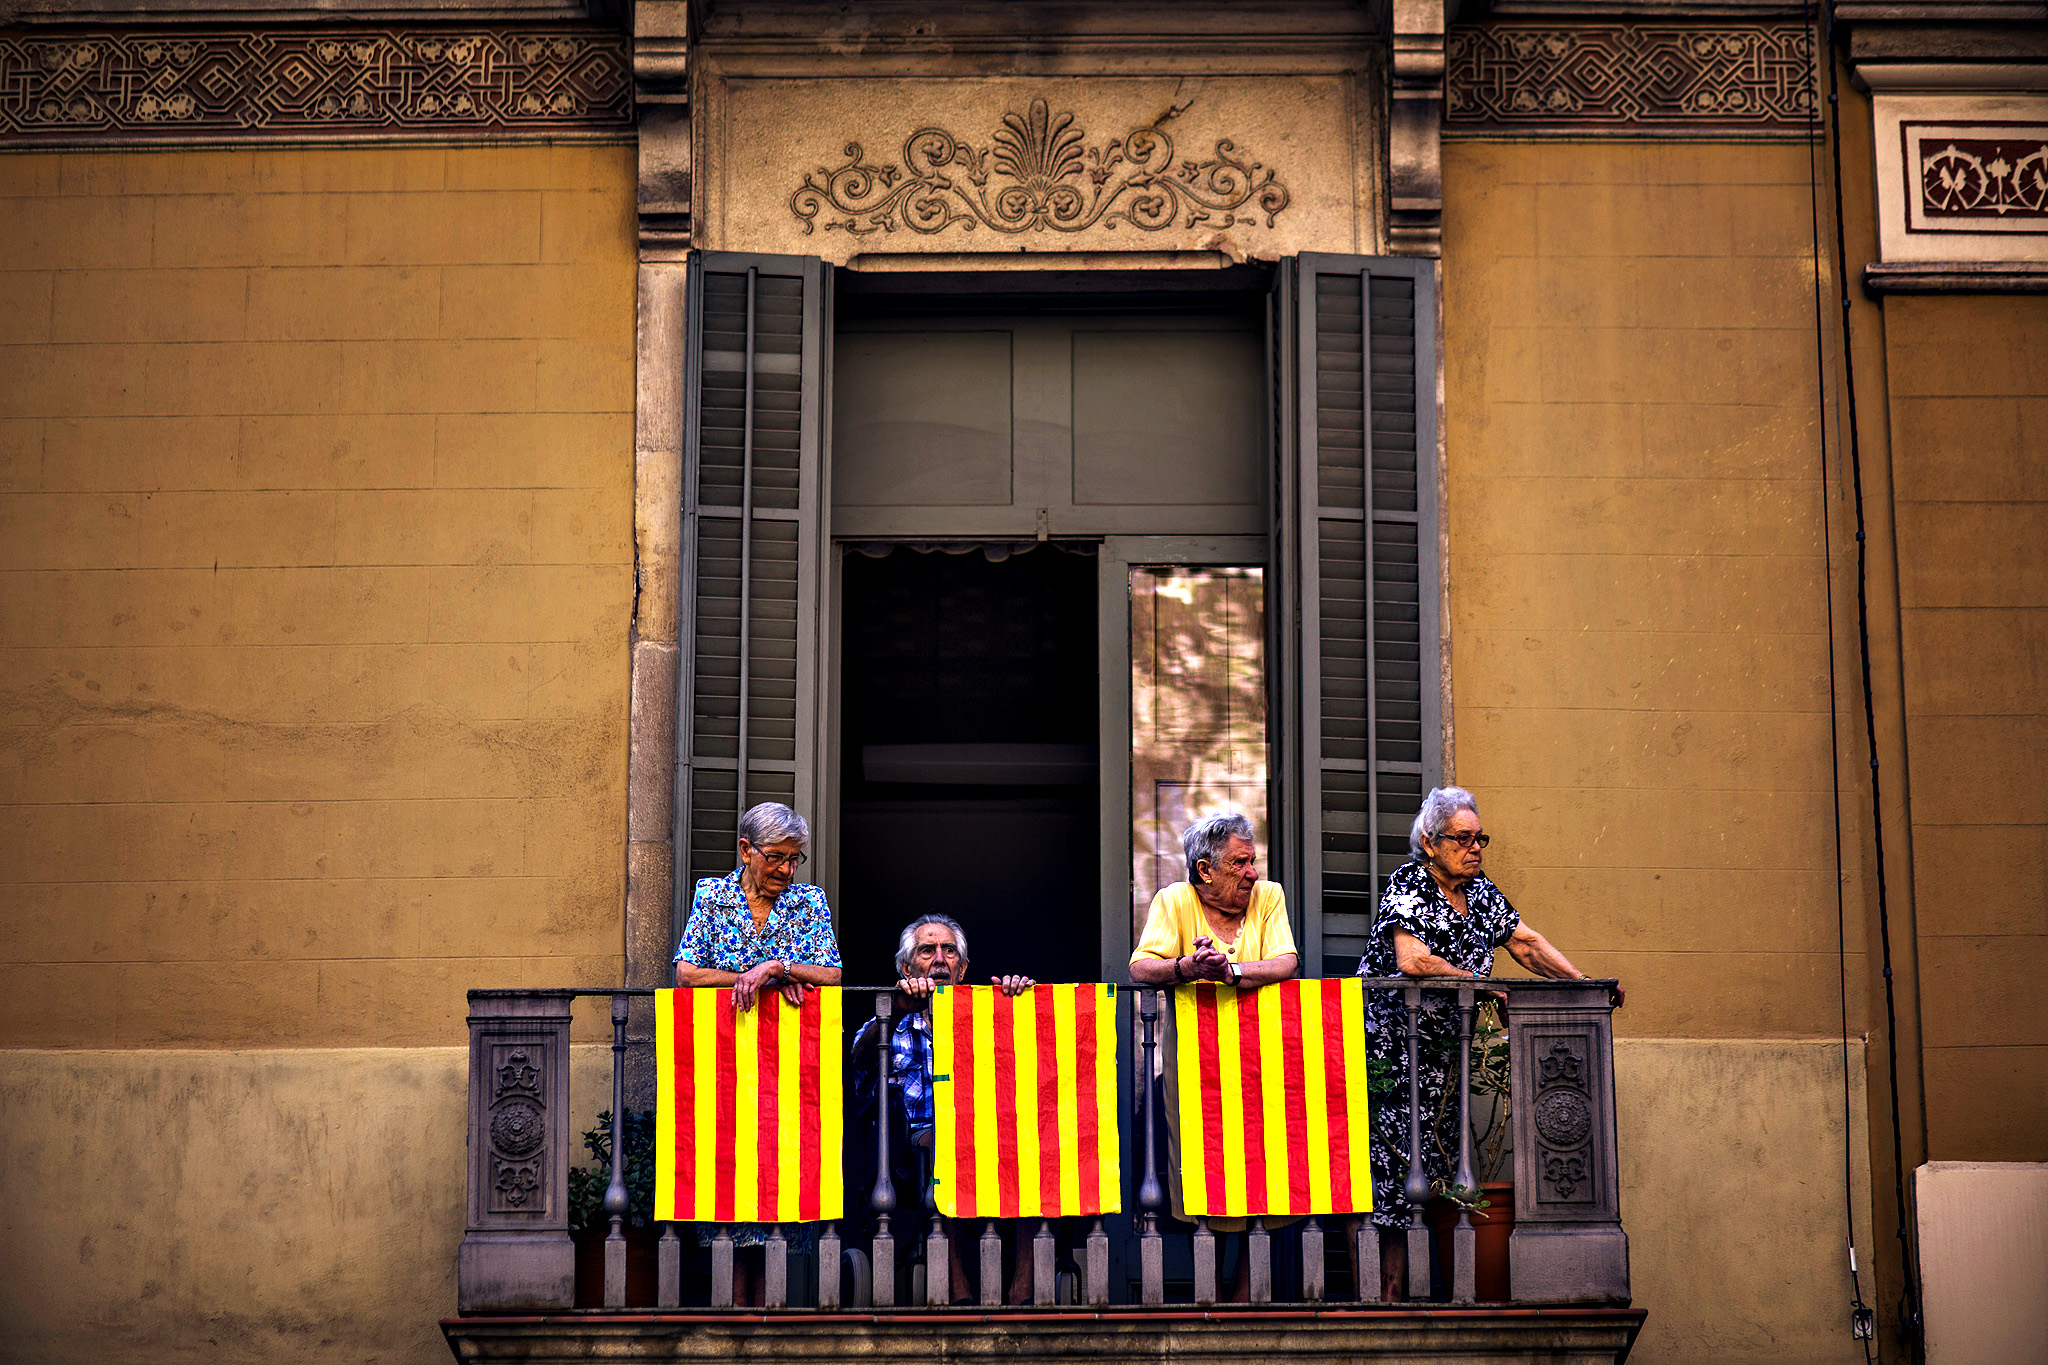 People stand on a balcony decorated with Catalonia flags in Barcelona, Spain, Thursday, Sept 11, 2014. A week before Scotland votes on whether to break away from the United Kingdom, separatists in northeastern Spain were trying to convince hundreds of thousands to protest across Catalonia to demand a secession sentiment vote that the central government in Madrid insists would be illegal.